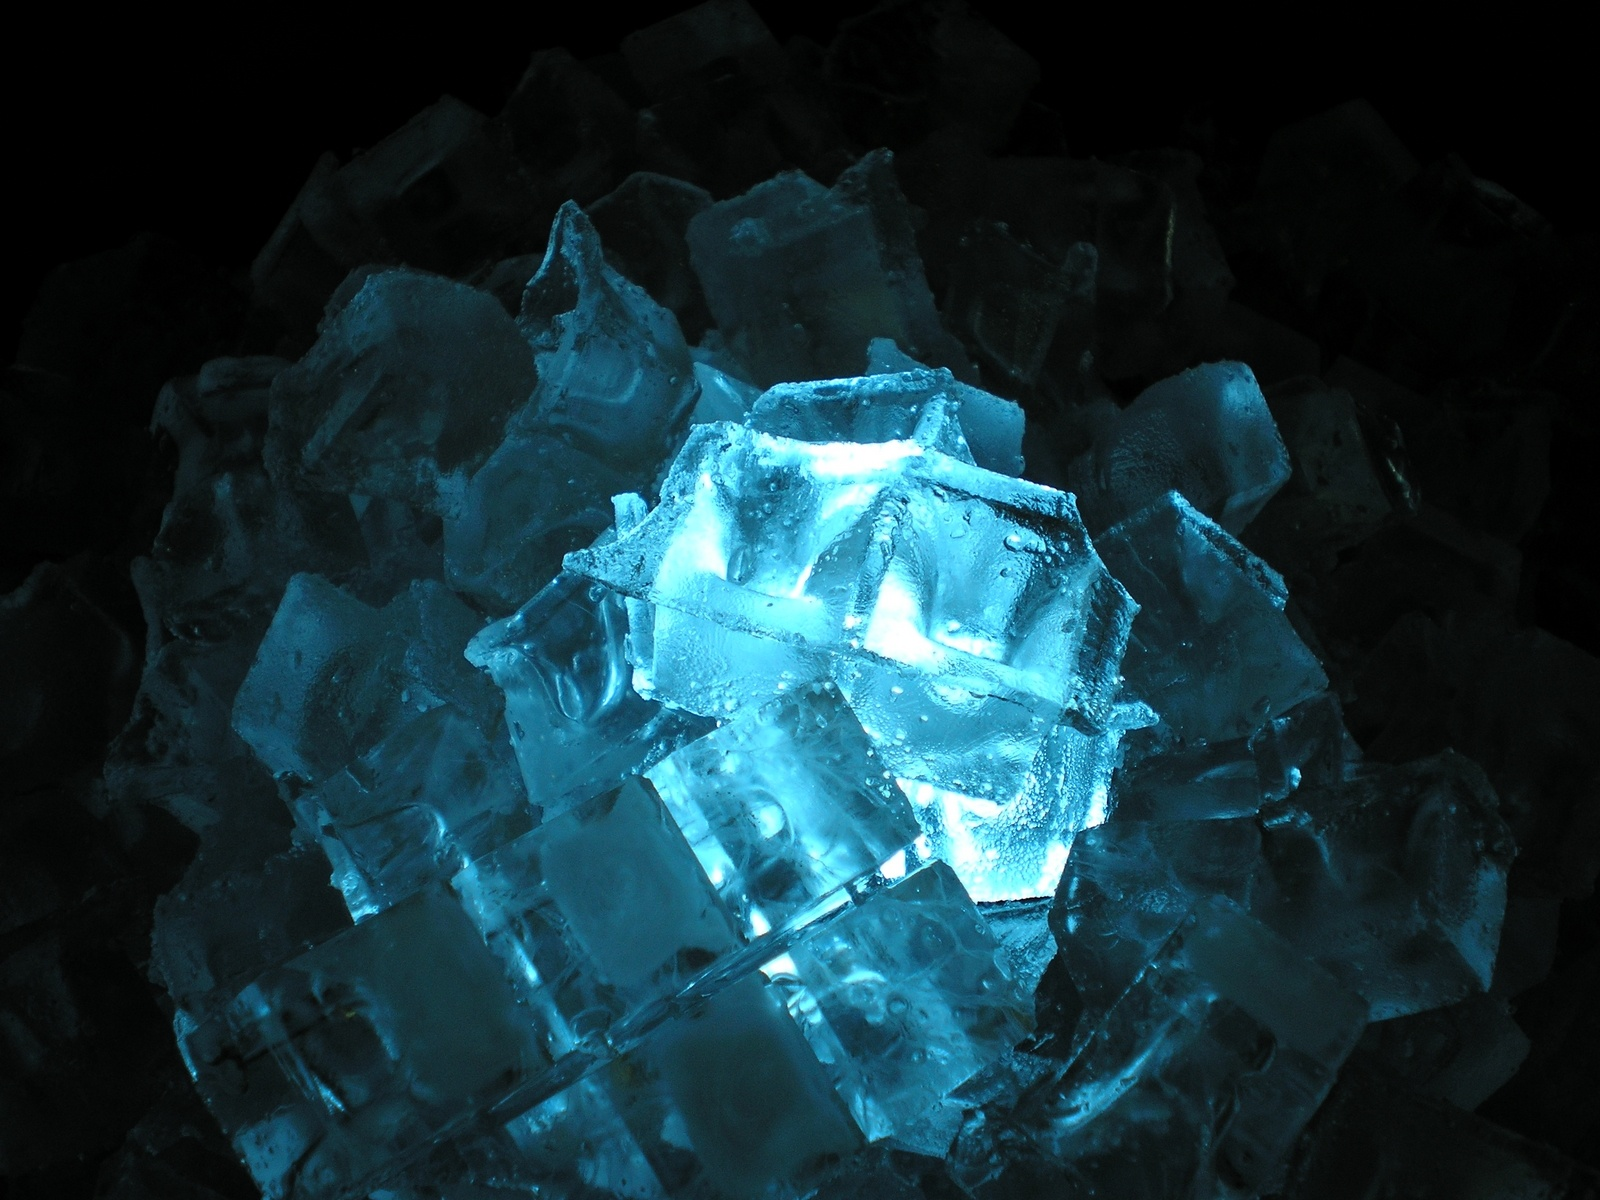 hd wallpaper of ice cubes